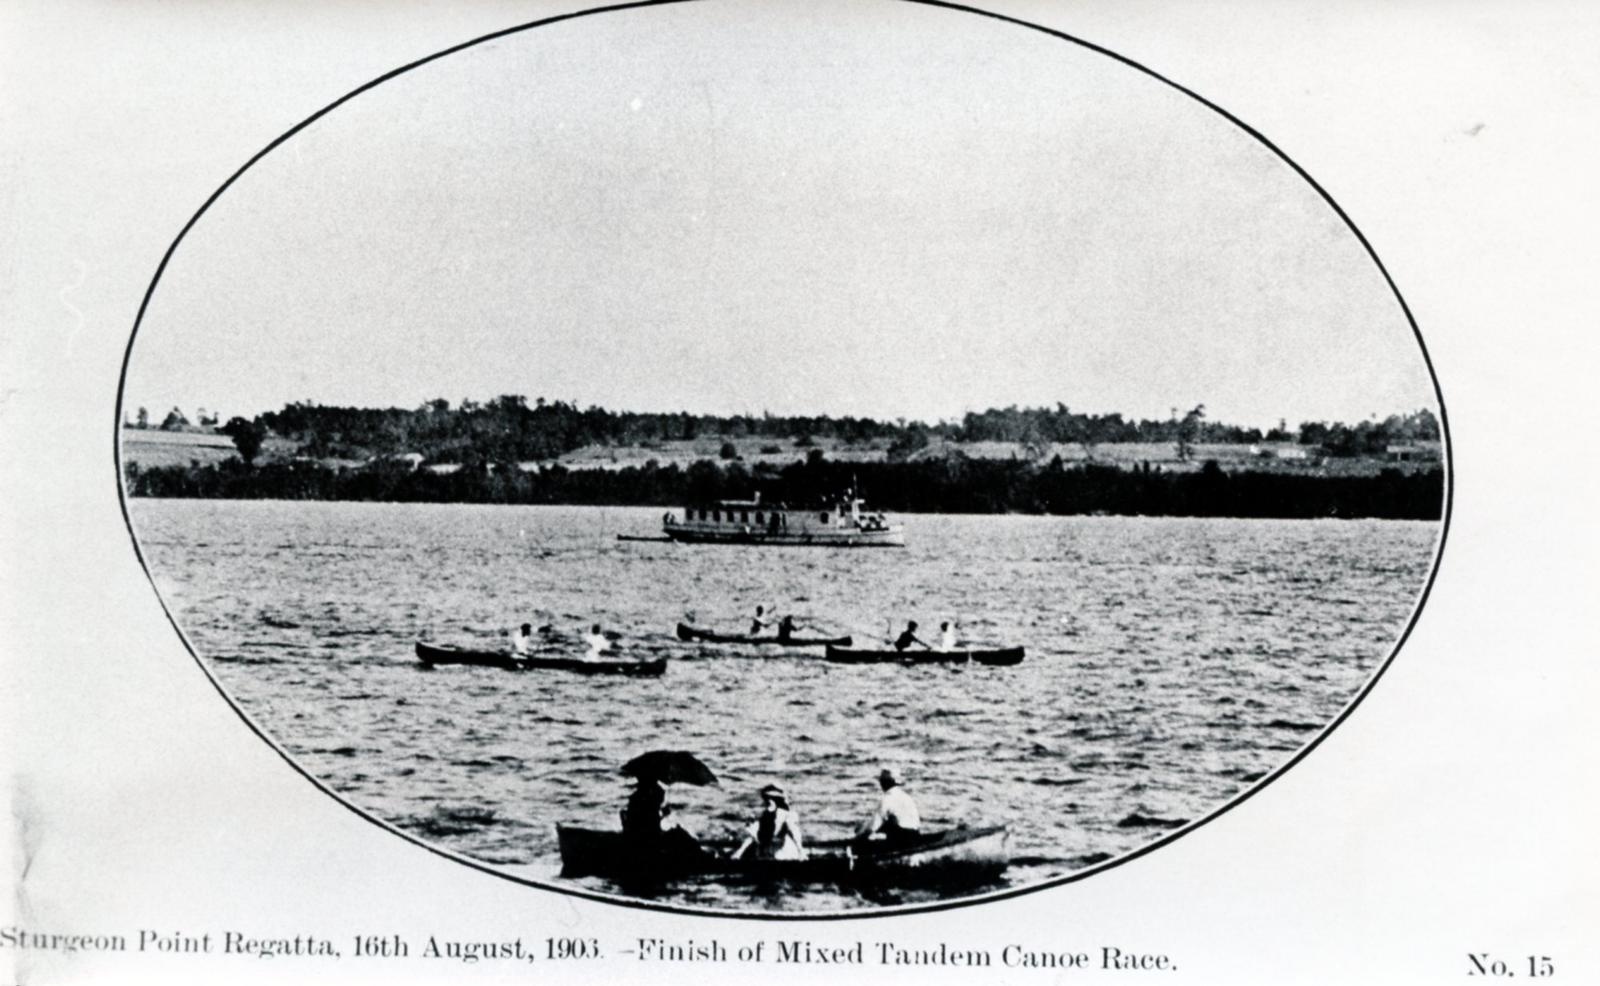 Sturgeon Point Regatta, 1906